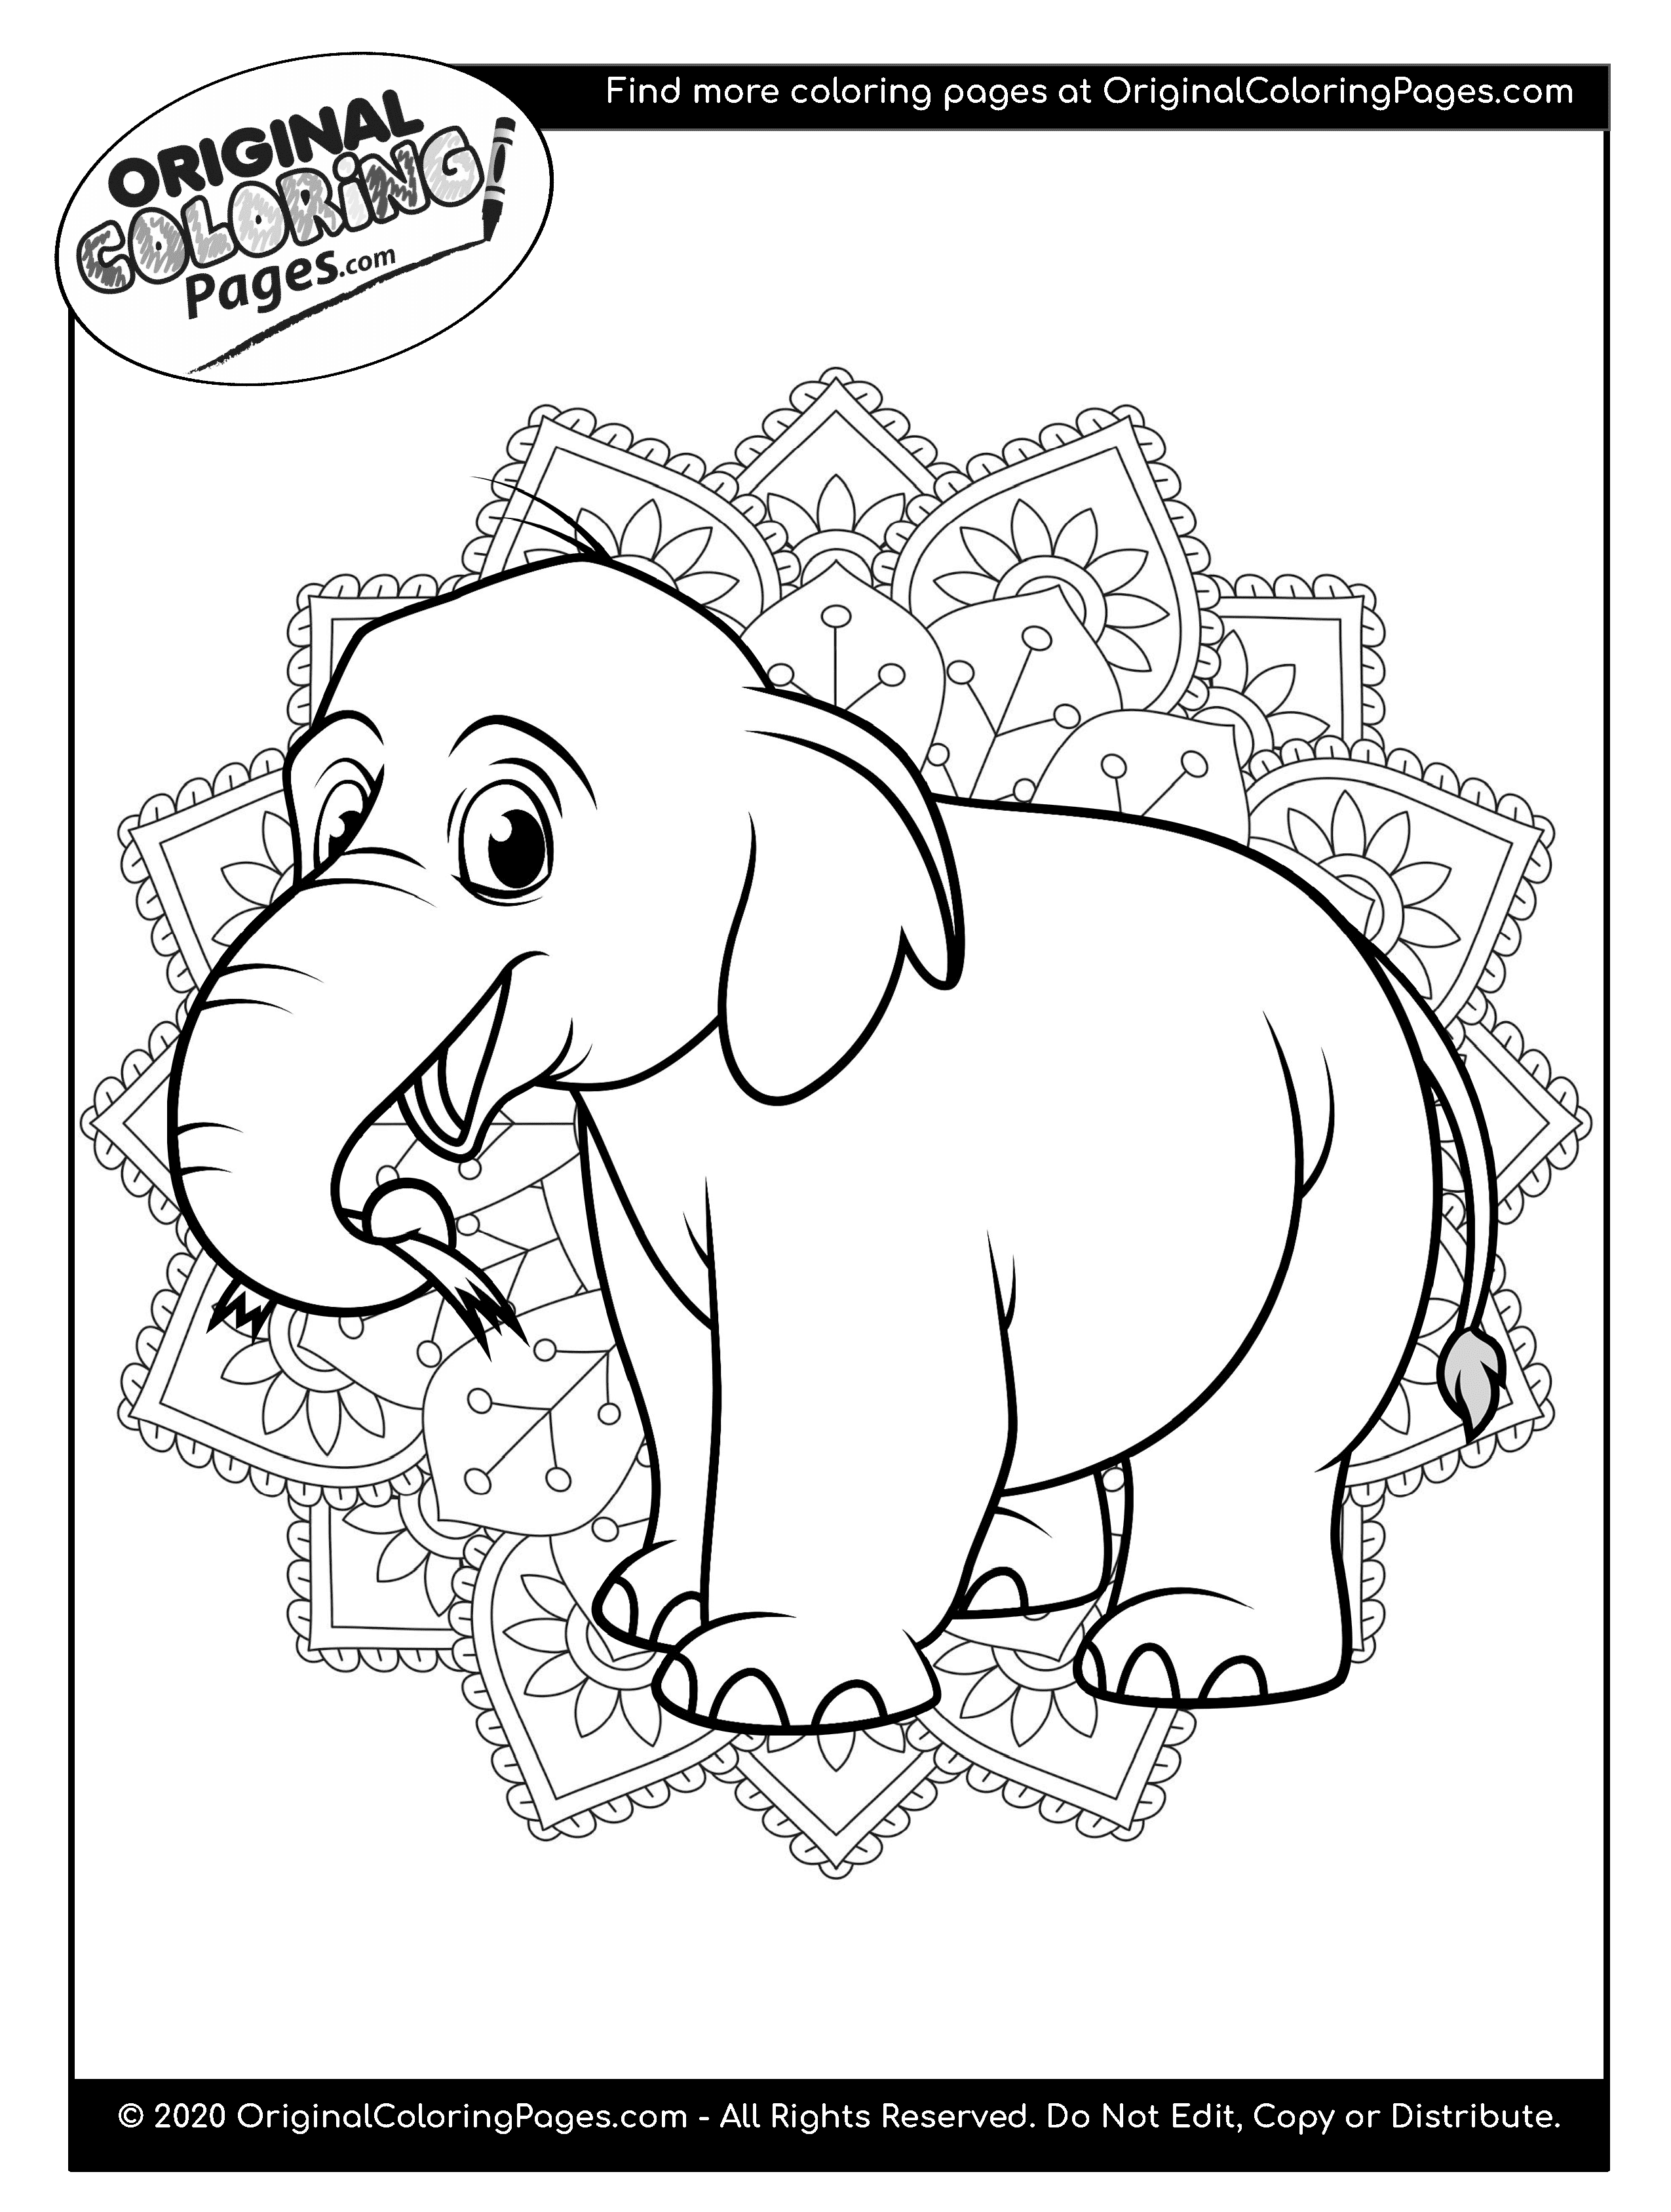 coloring pages elephants elephant coloring pages coloring pages original elephants coloring pages